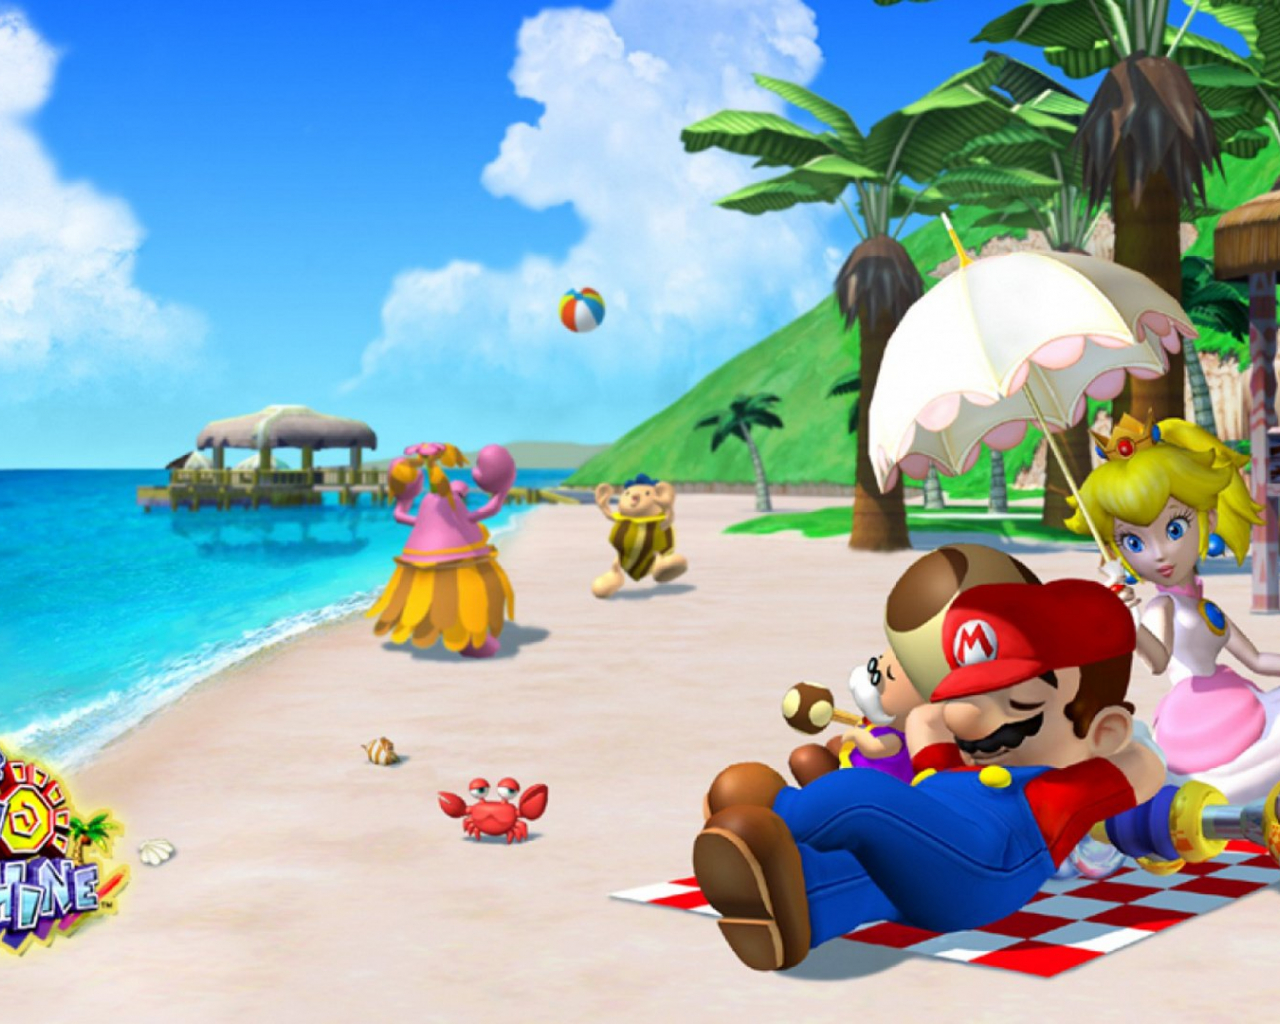 Free Download Super Mario Sunshine Hd Wallpaper Background Image